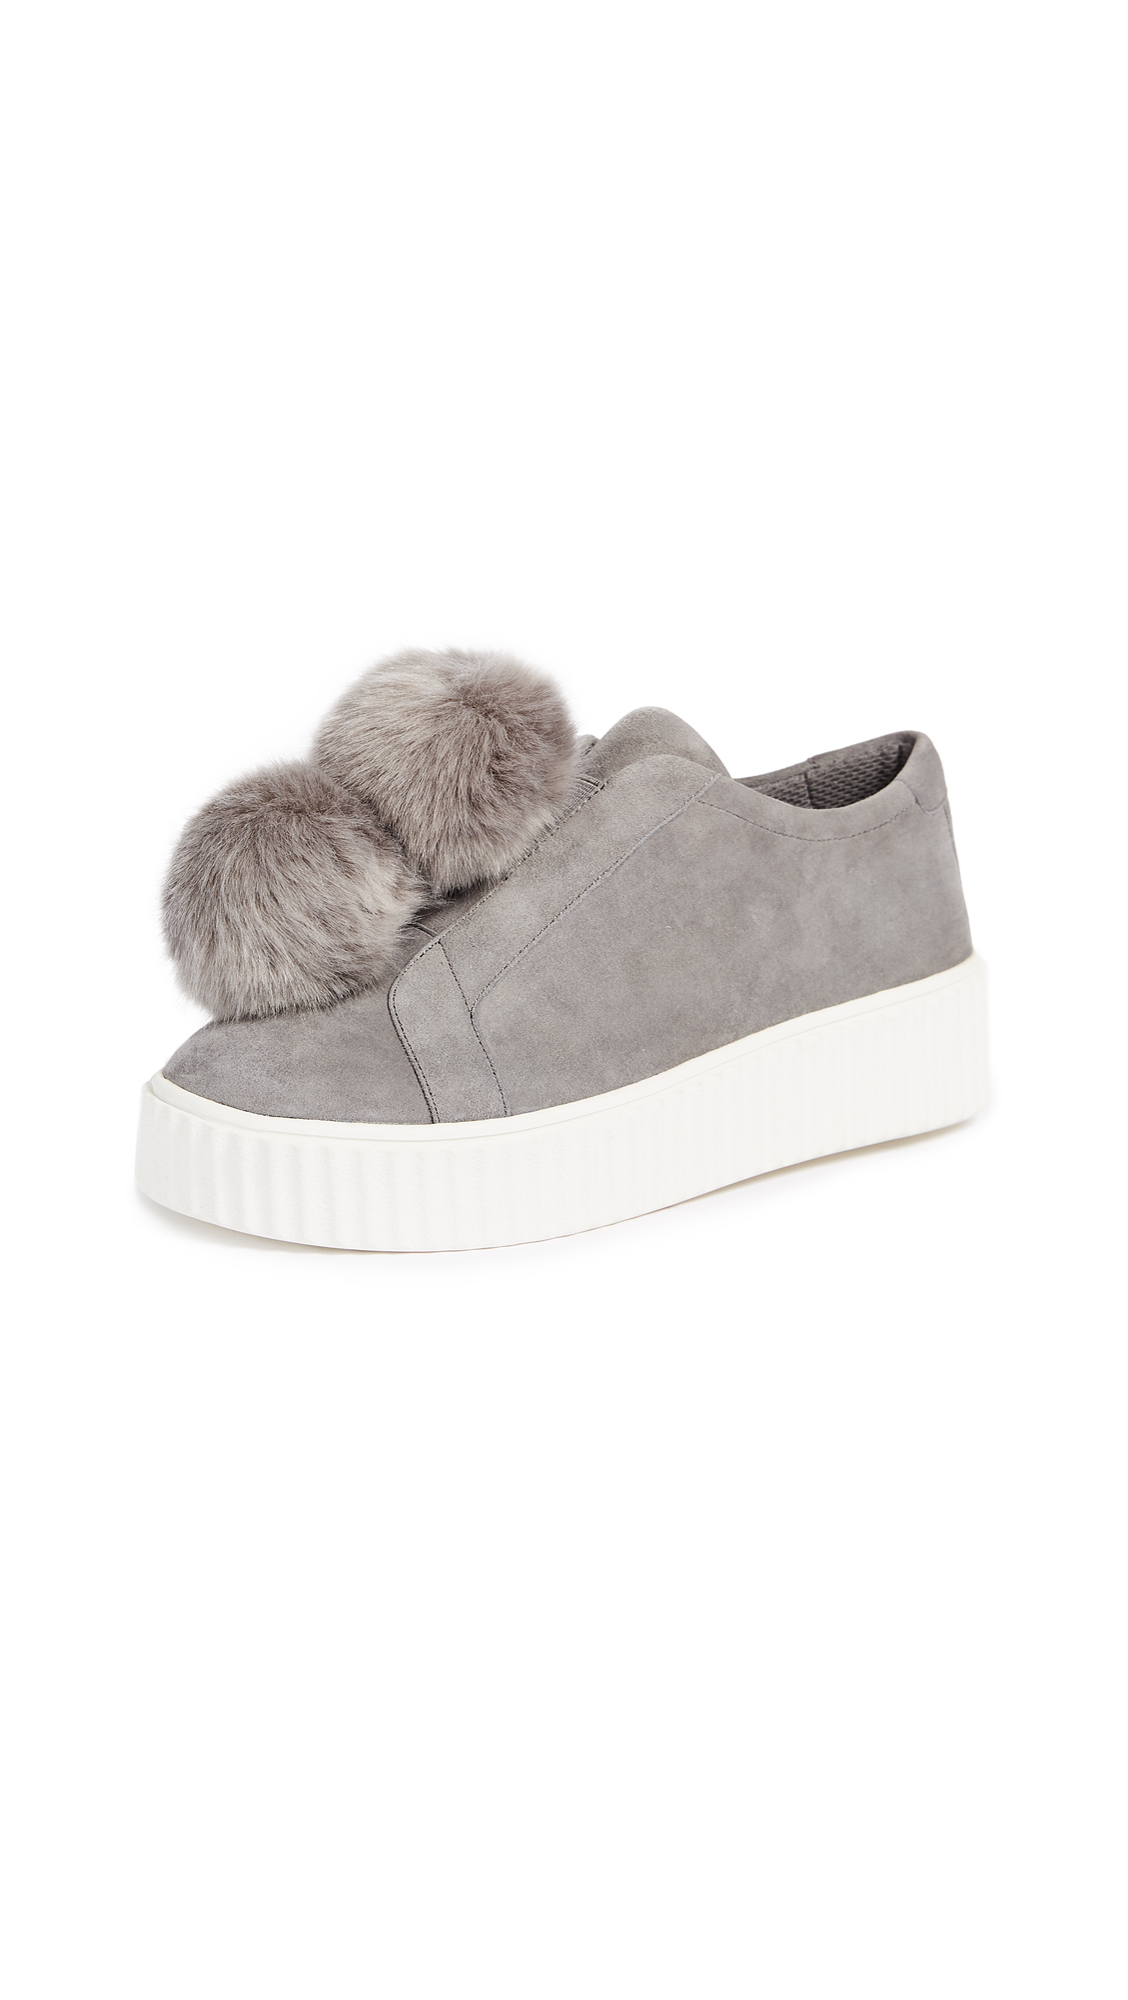 The Fix Talon Sneakers - Elephant Grey